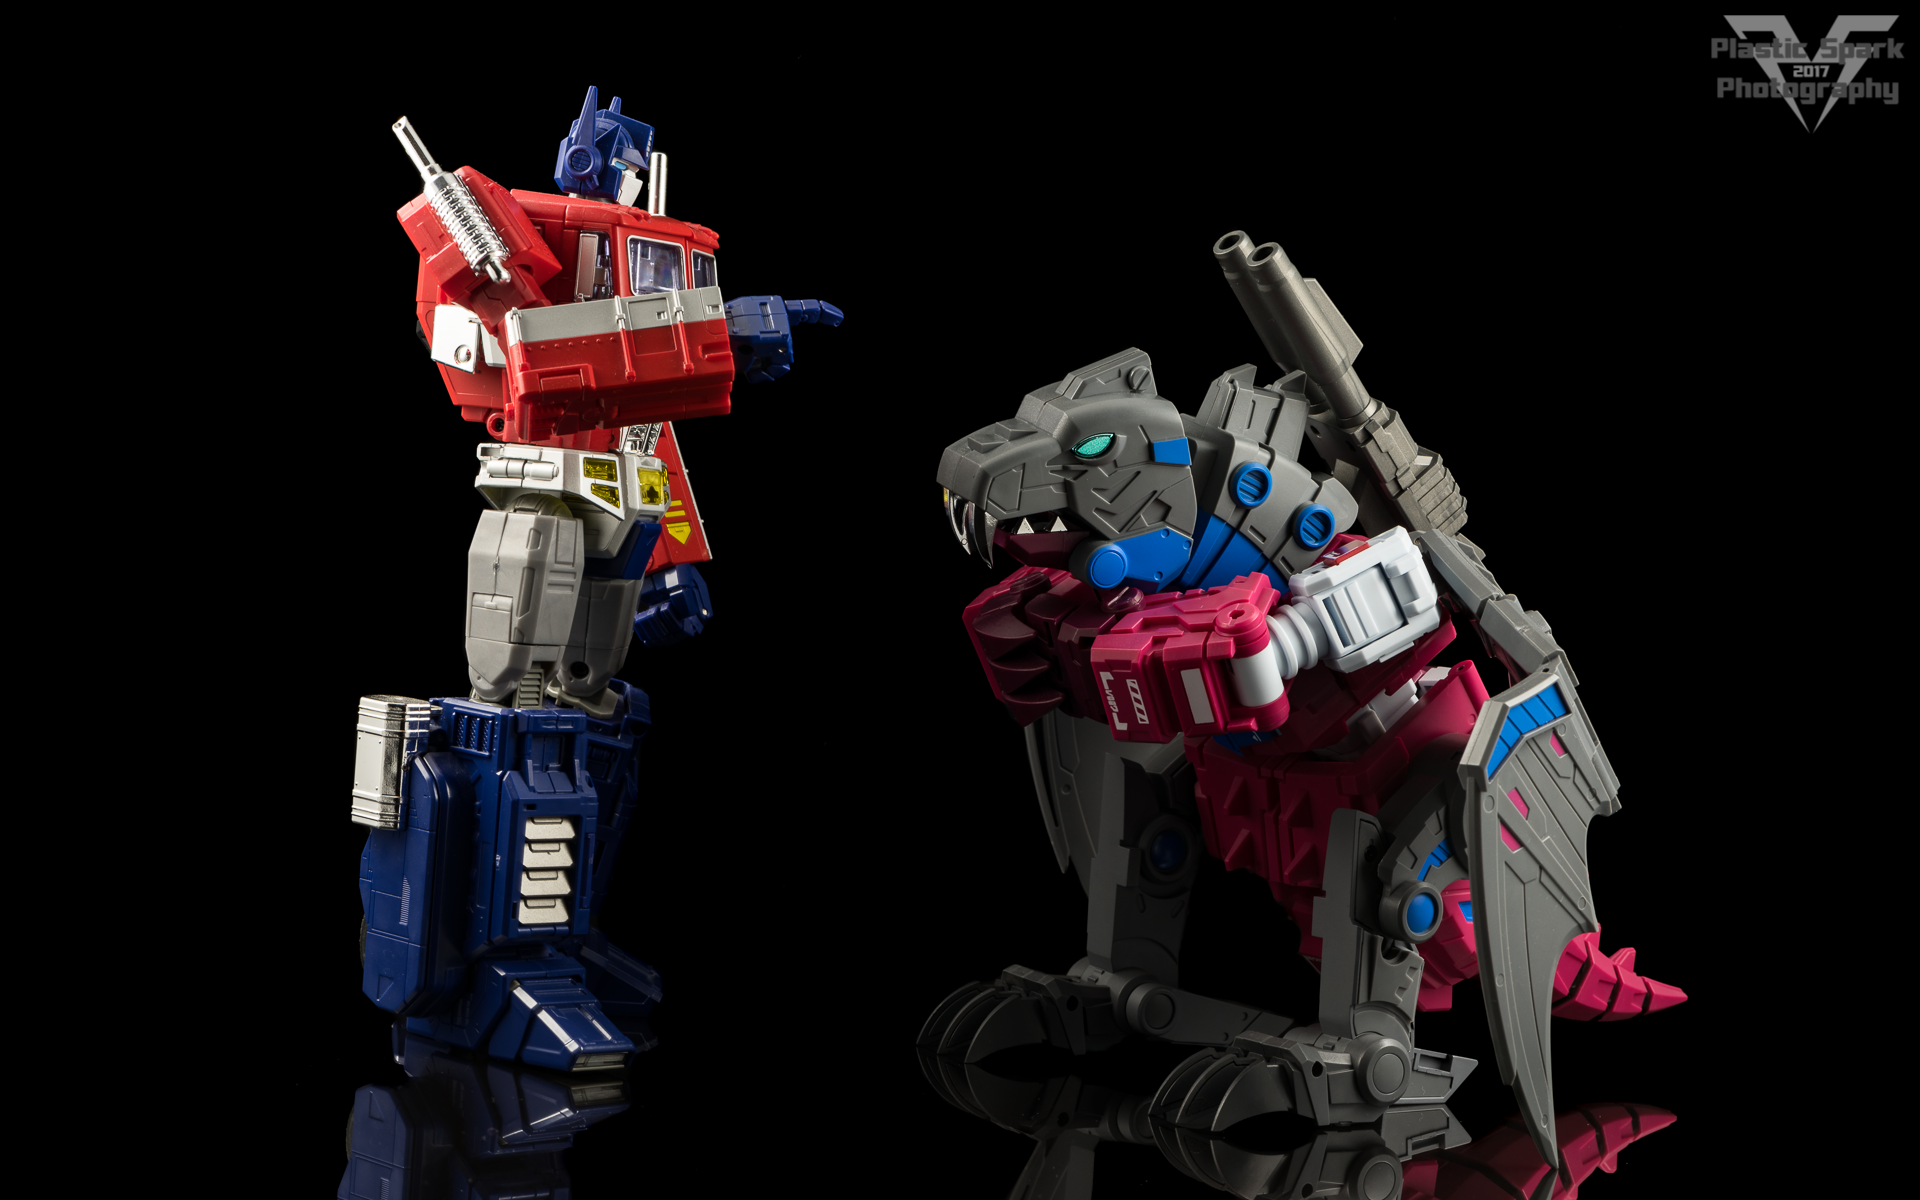 Fans-Hobby-MB-05-Flypro-(7-of-42).png